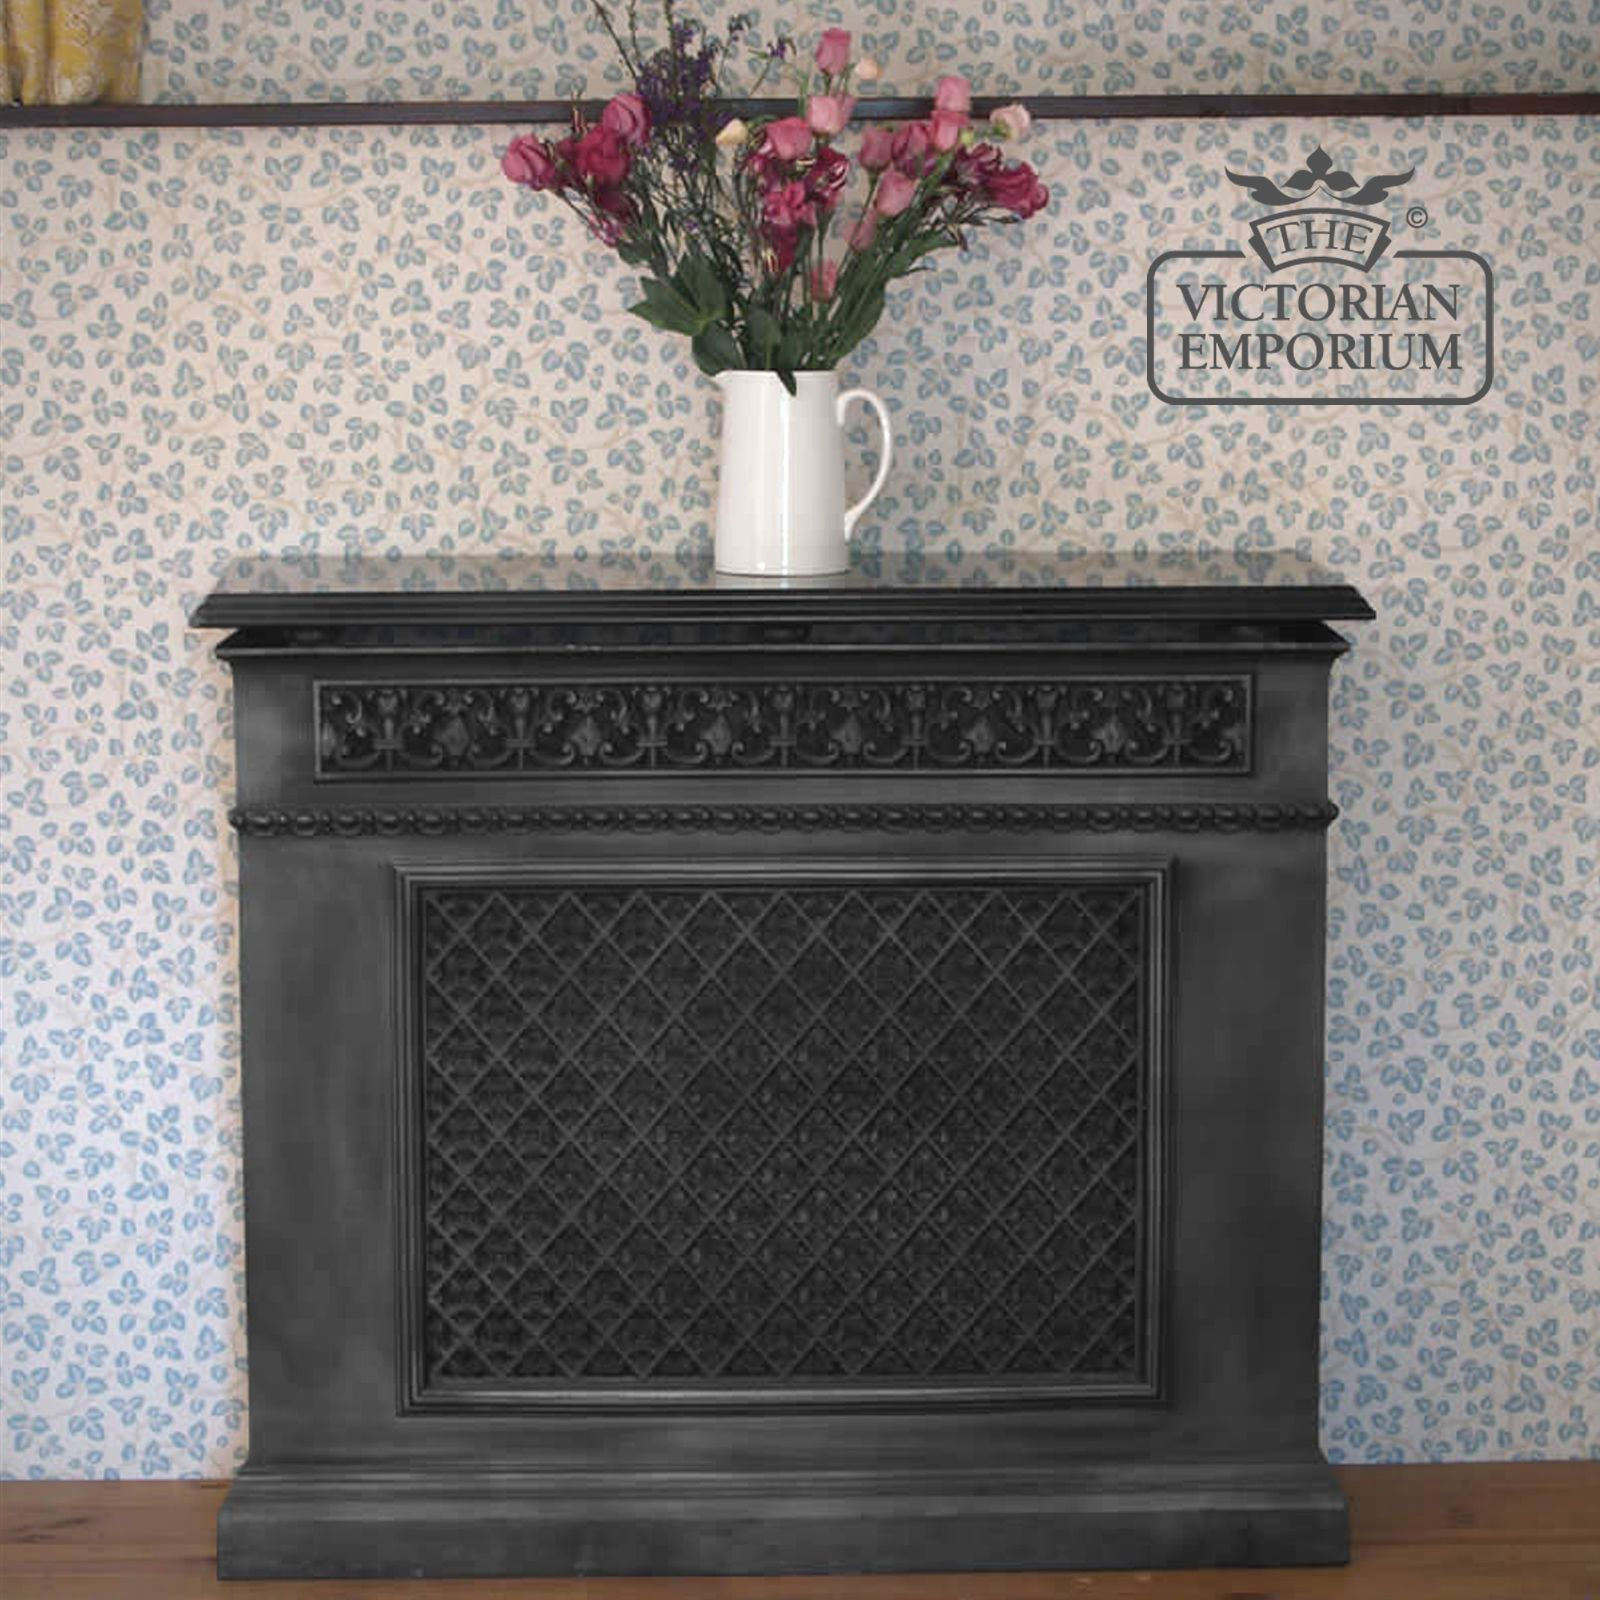 Decorative Cast Iron 1 Panel Radiator Cover